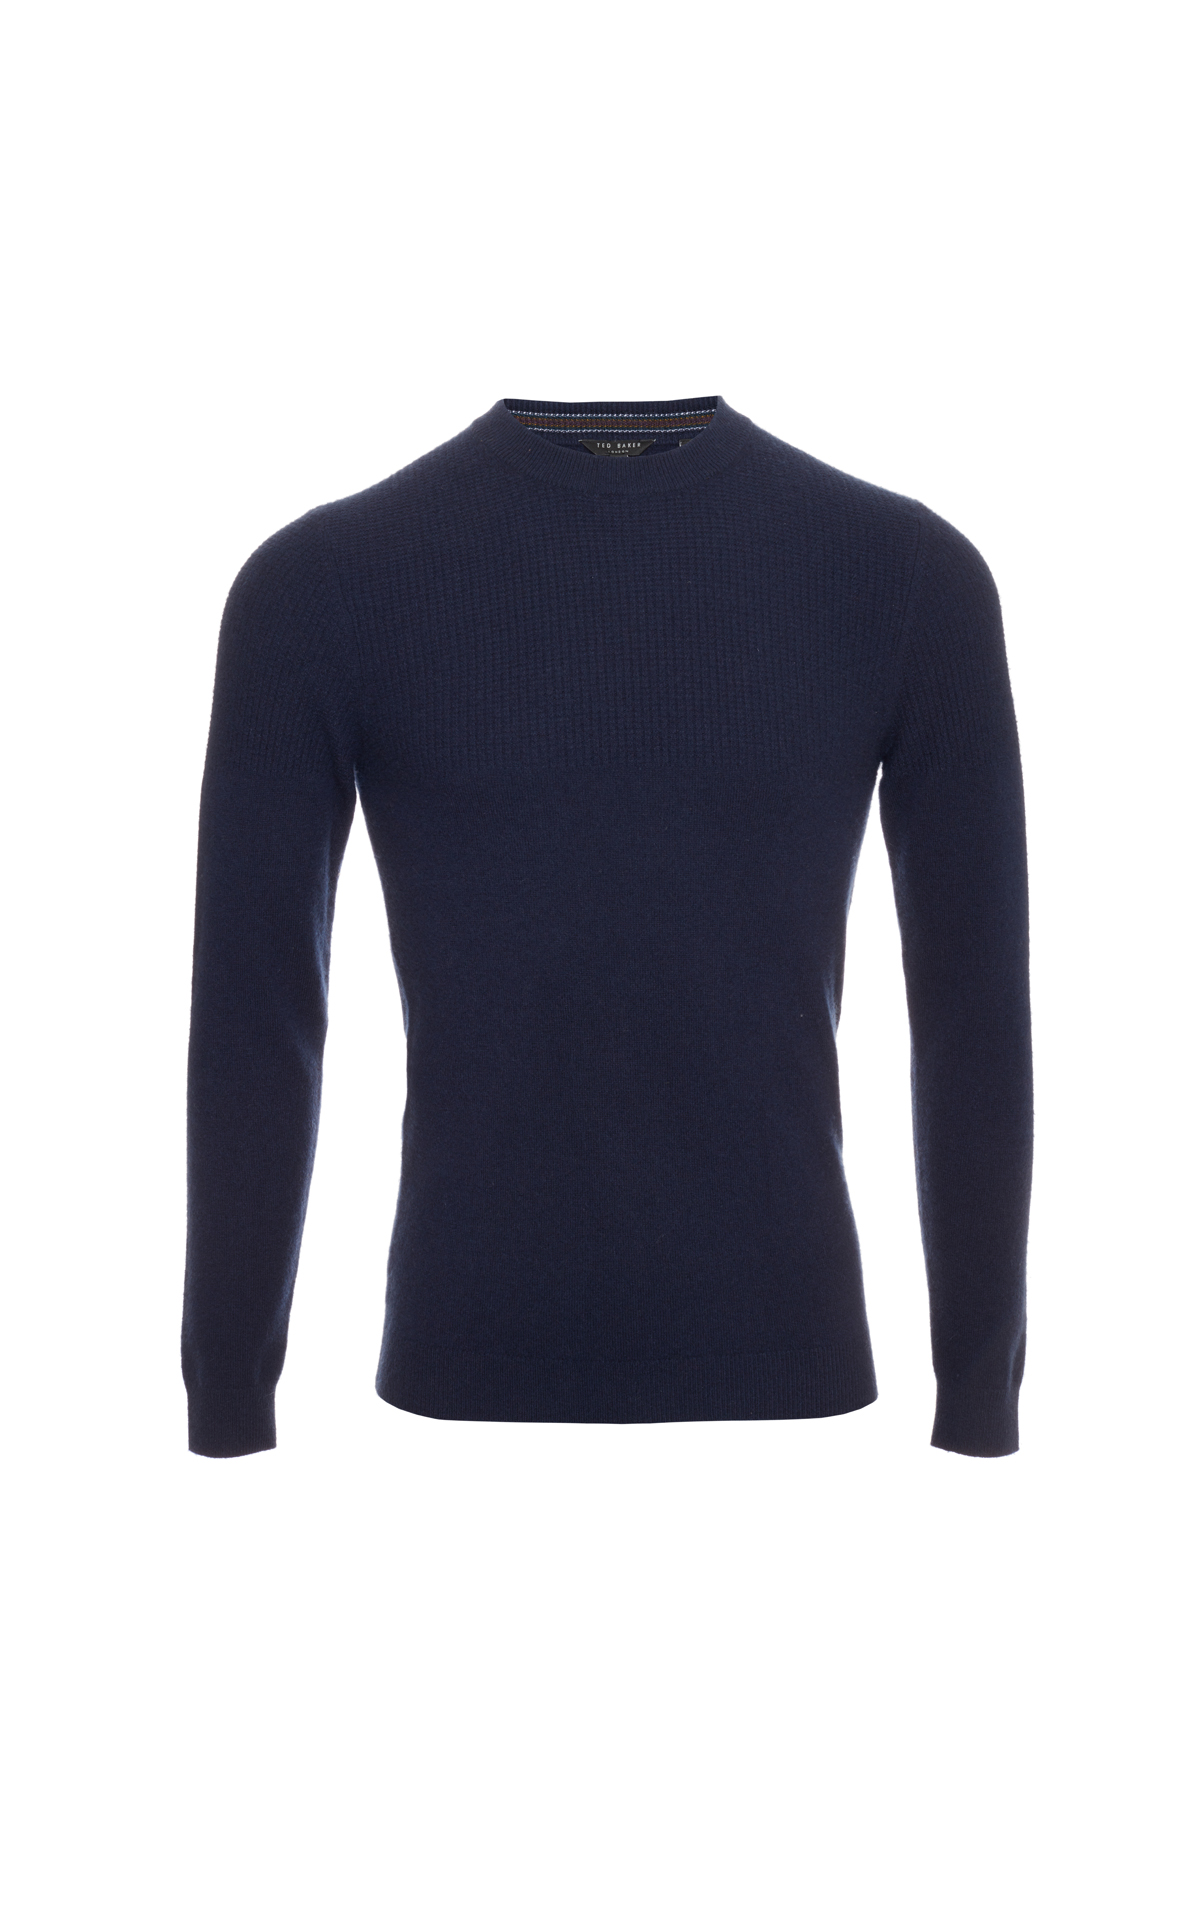 Ted Baker  Navy cashmere jumper from Bicester Village